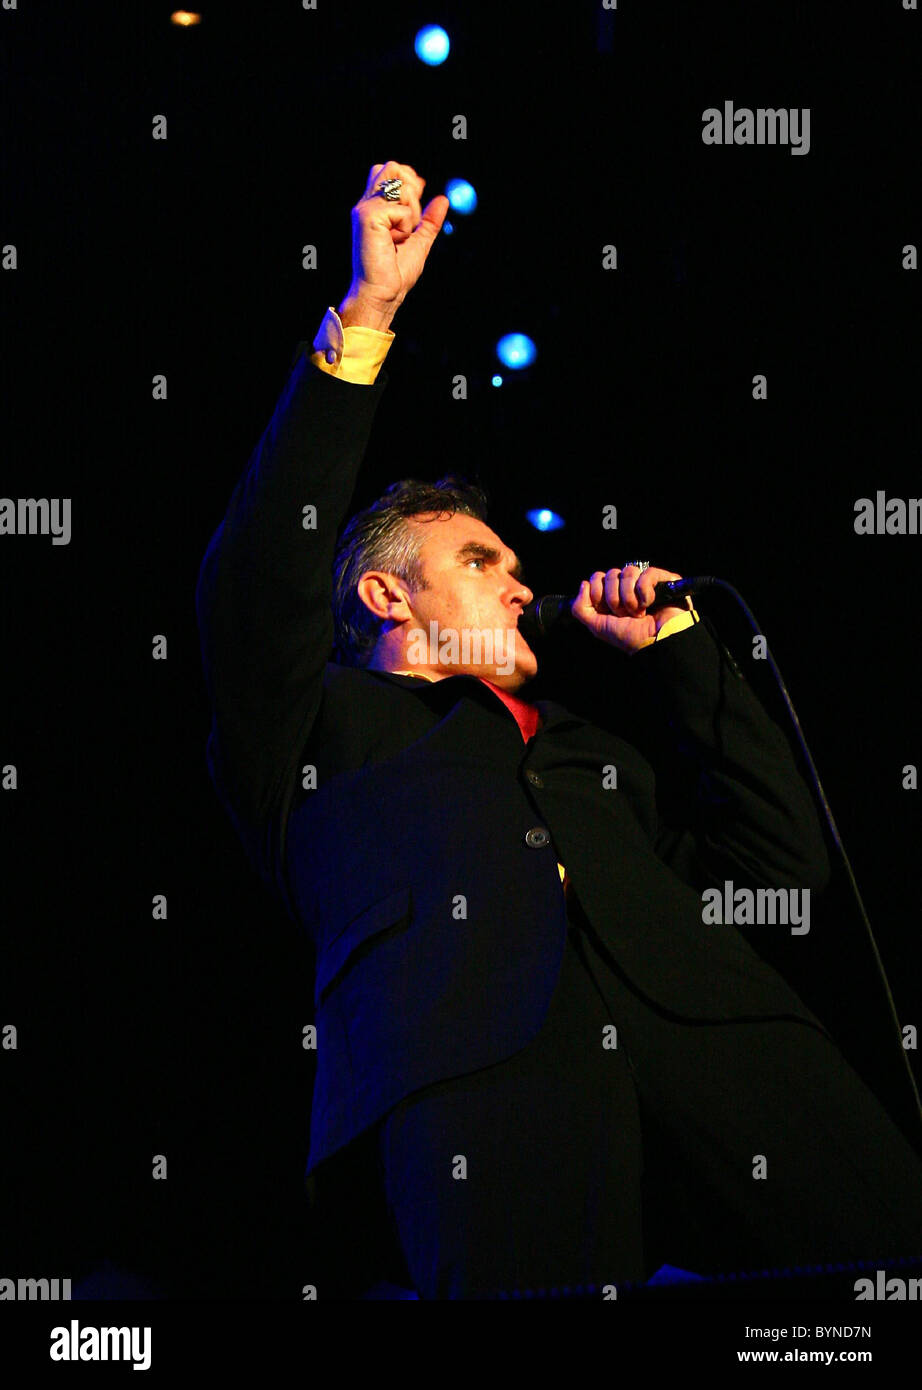 morrissey performing at the backyard austin texas 26 05 07